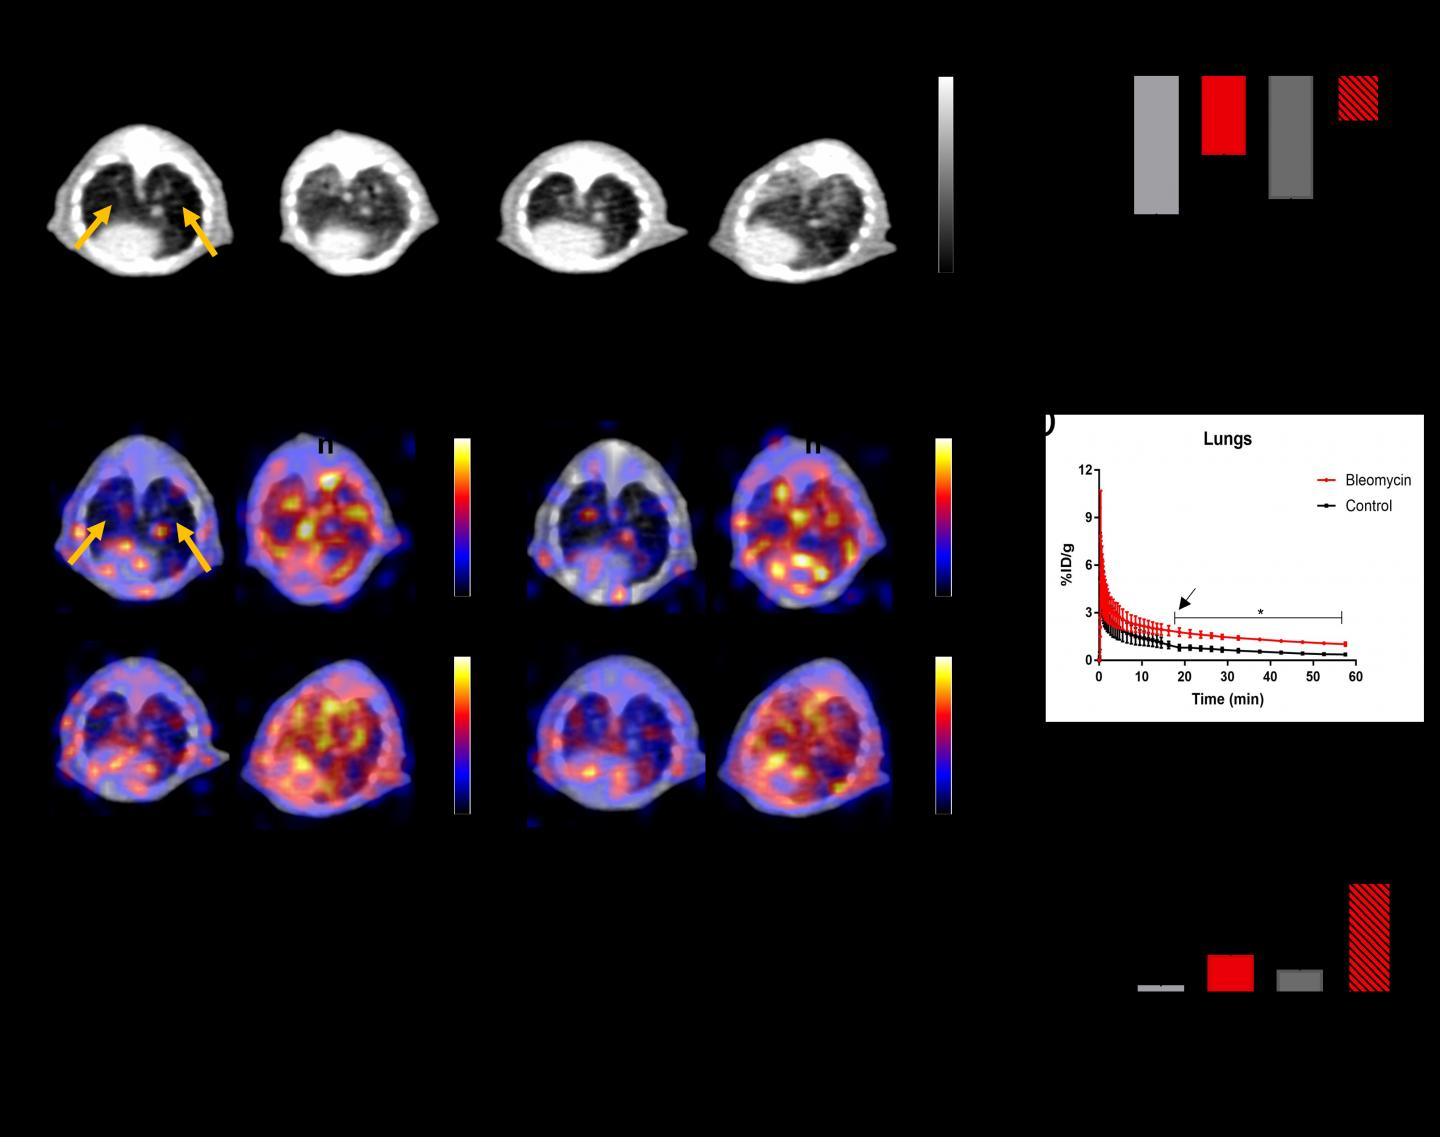 PET and CT images of lung fibrosis in a mouse model.